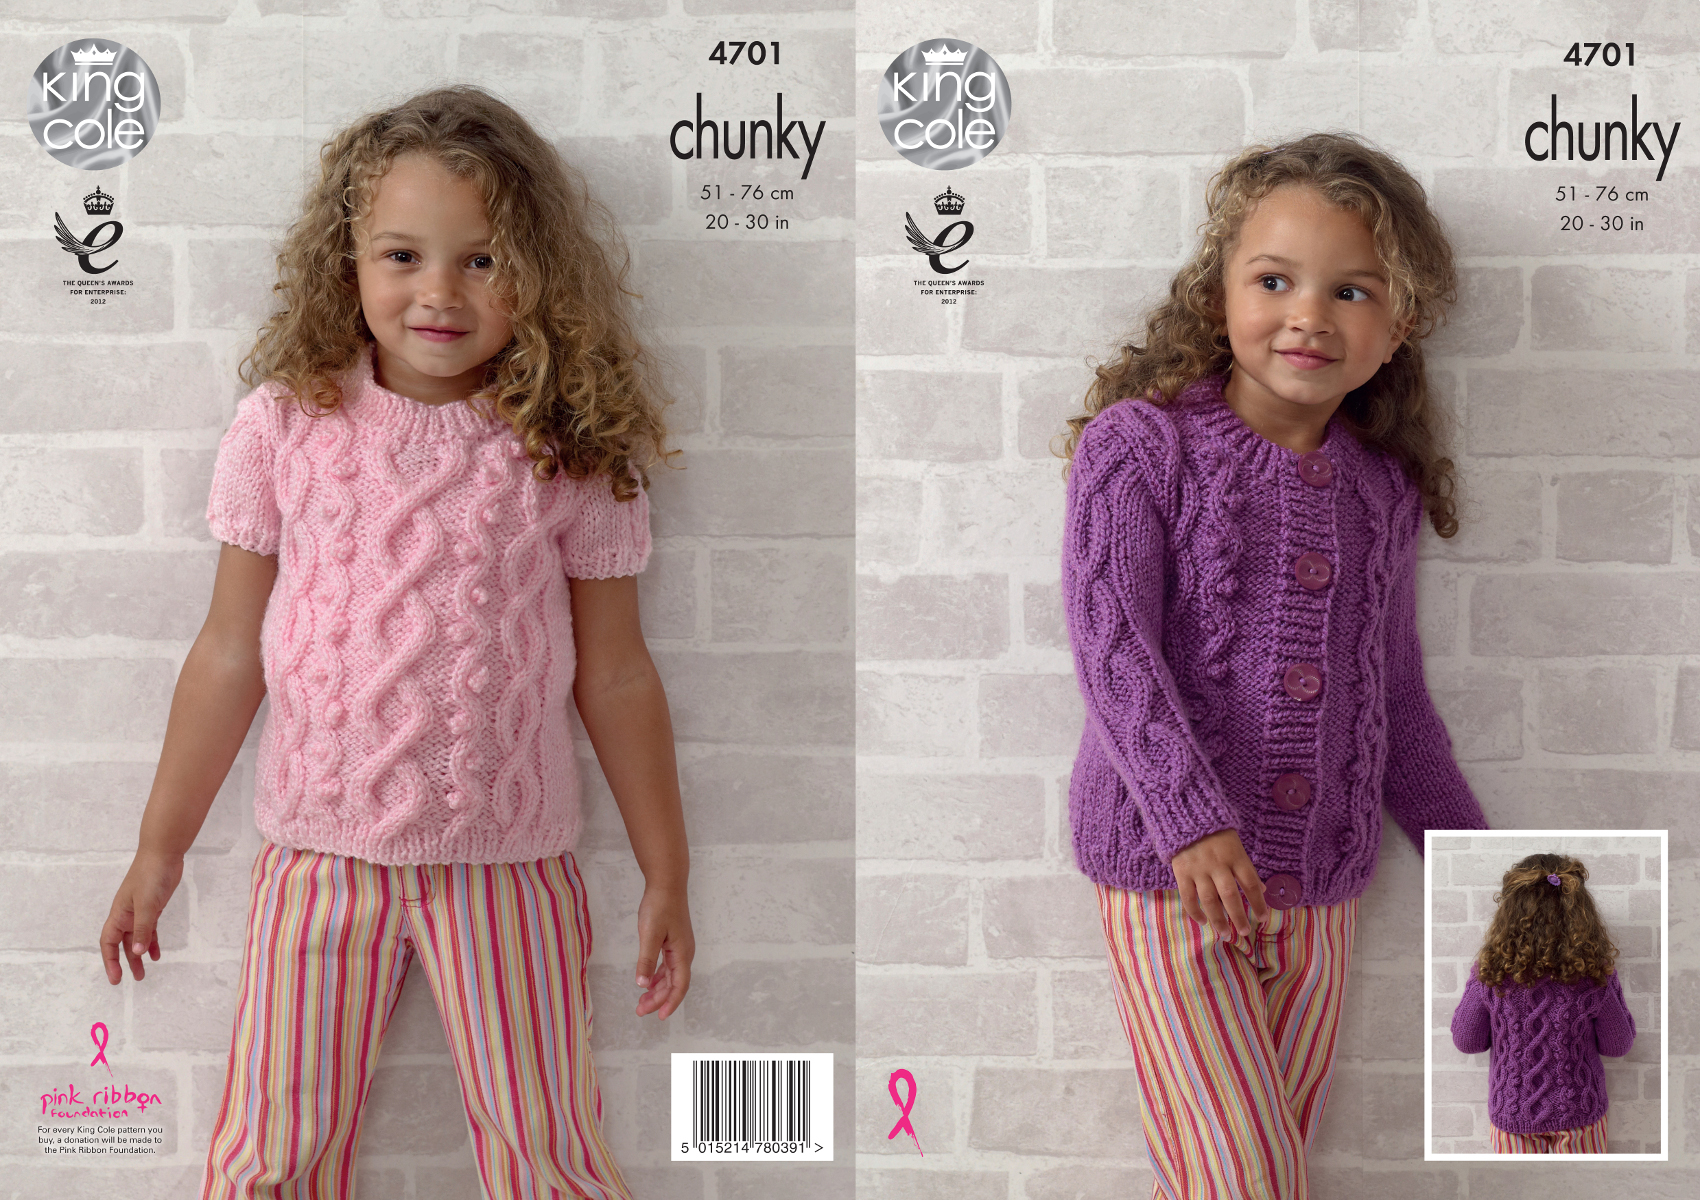 fbdae323d2b0bd King Cole Girls Chunky Knitting Pattern Cable Knit Round Neck Top ...